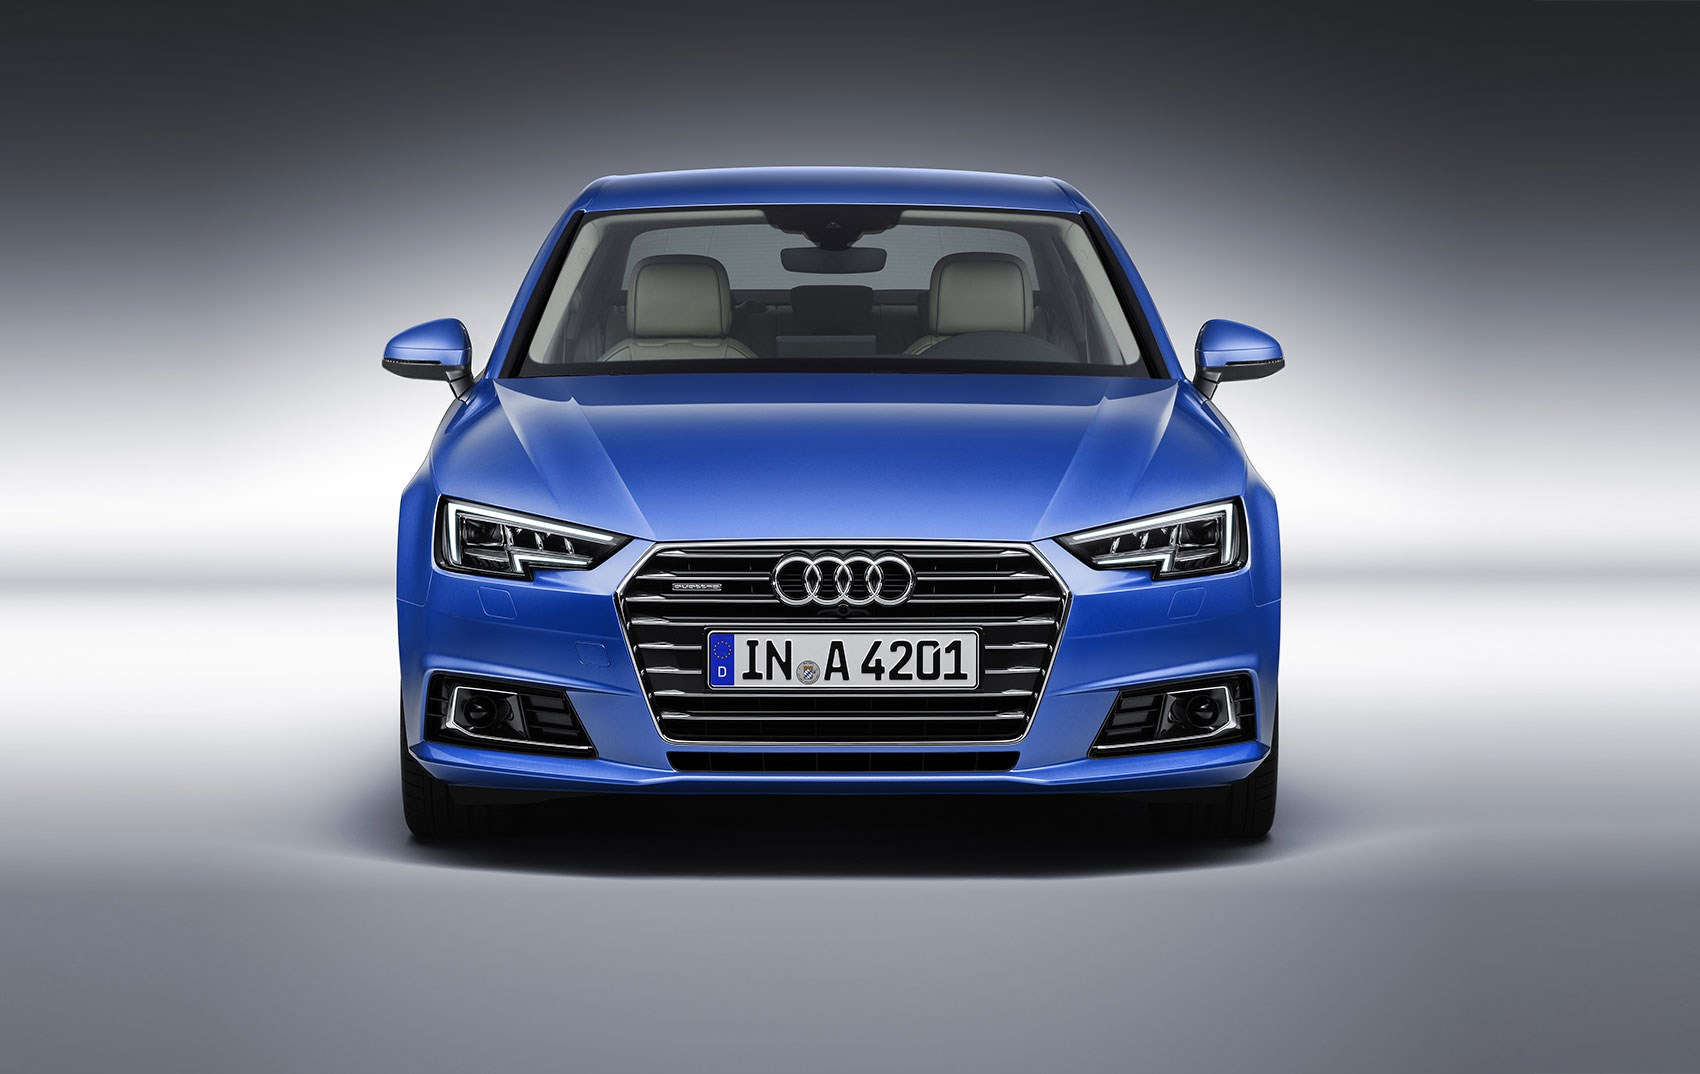 Audi cars 2017 audi models -  The New 2016 Audi A4